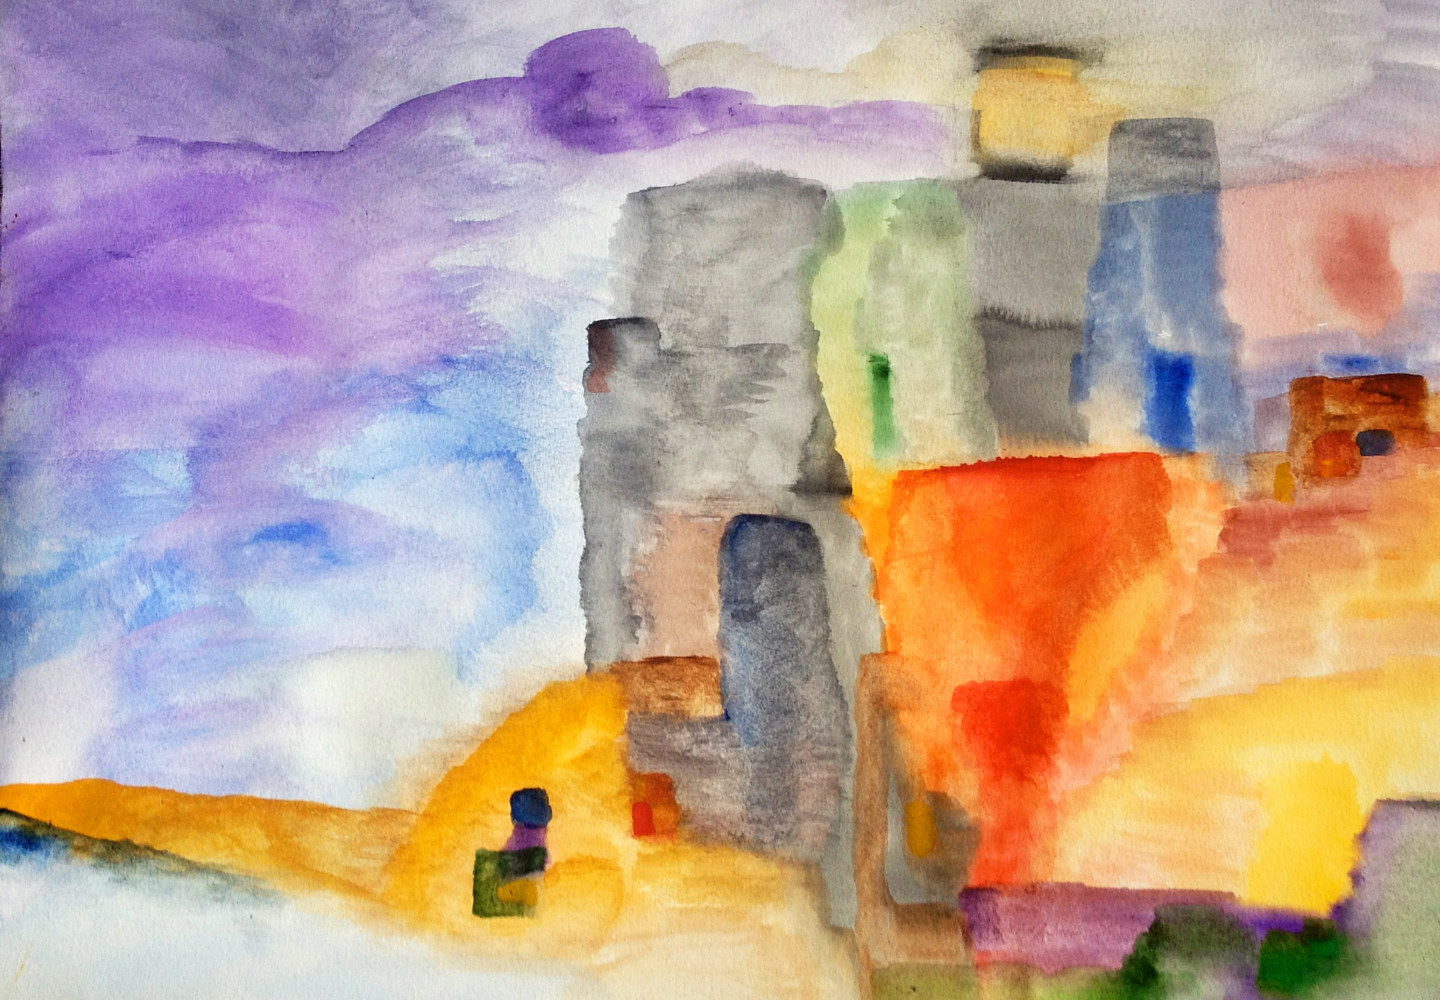 Watercolor A village in Provence | Un village en Provence by Nathalie Gribinski